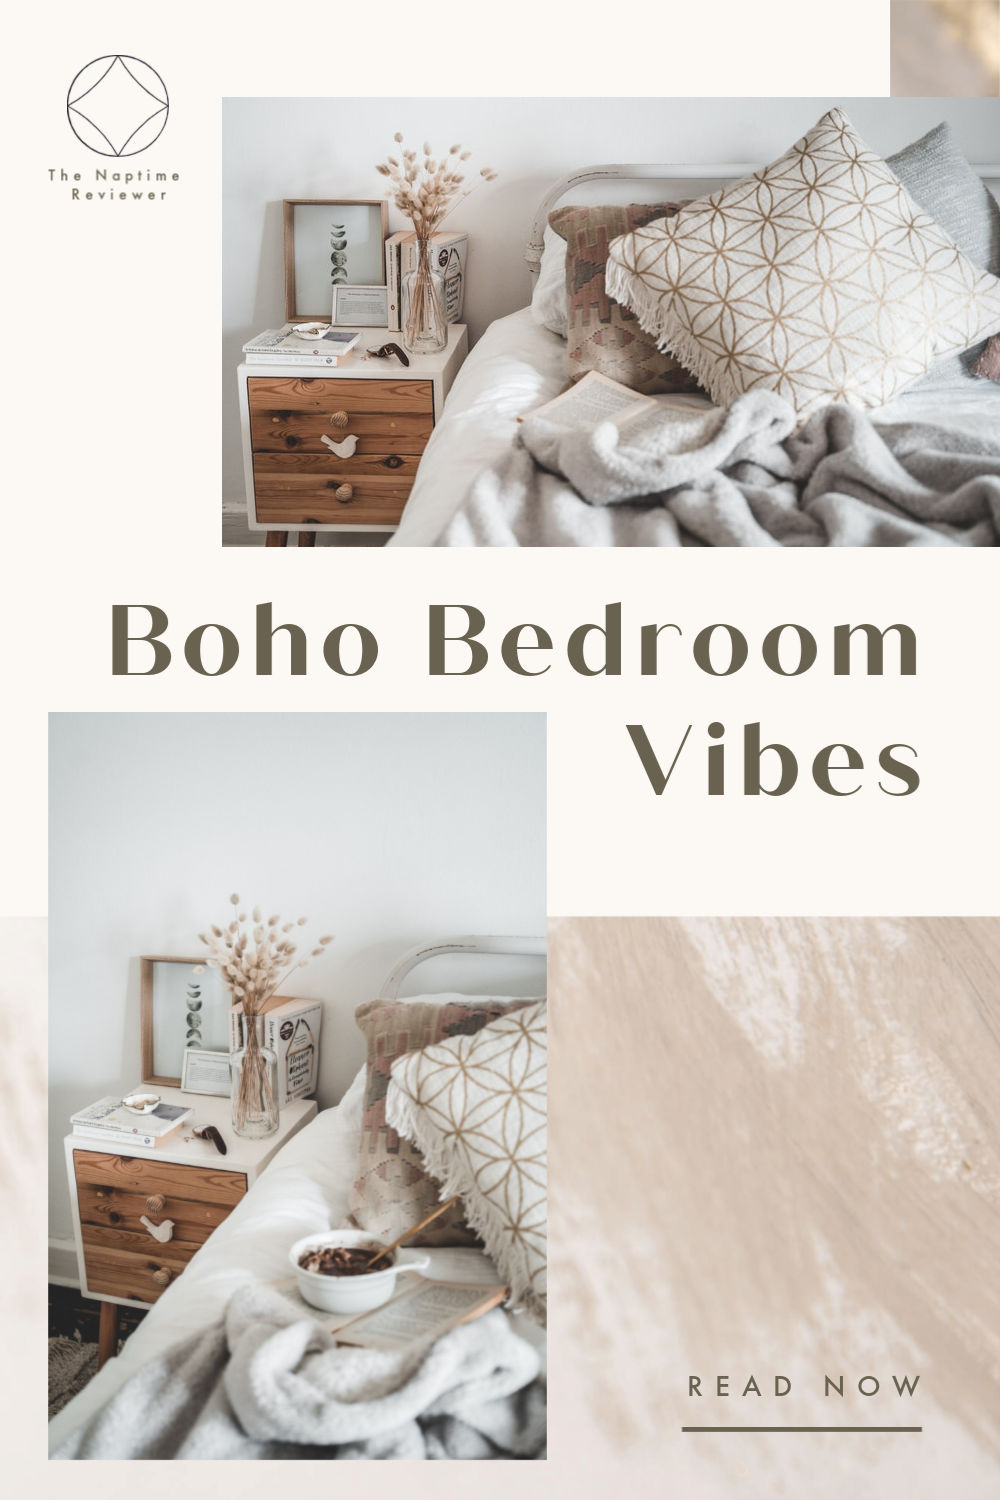 Boho bedroom vibes with vintage pillows